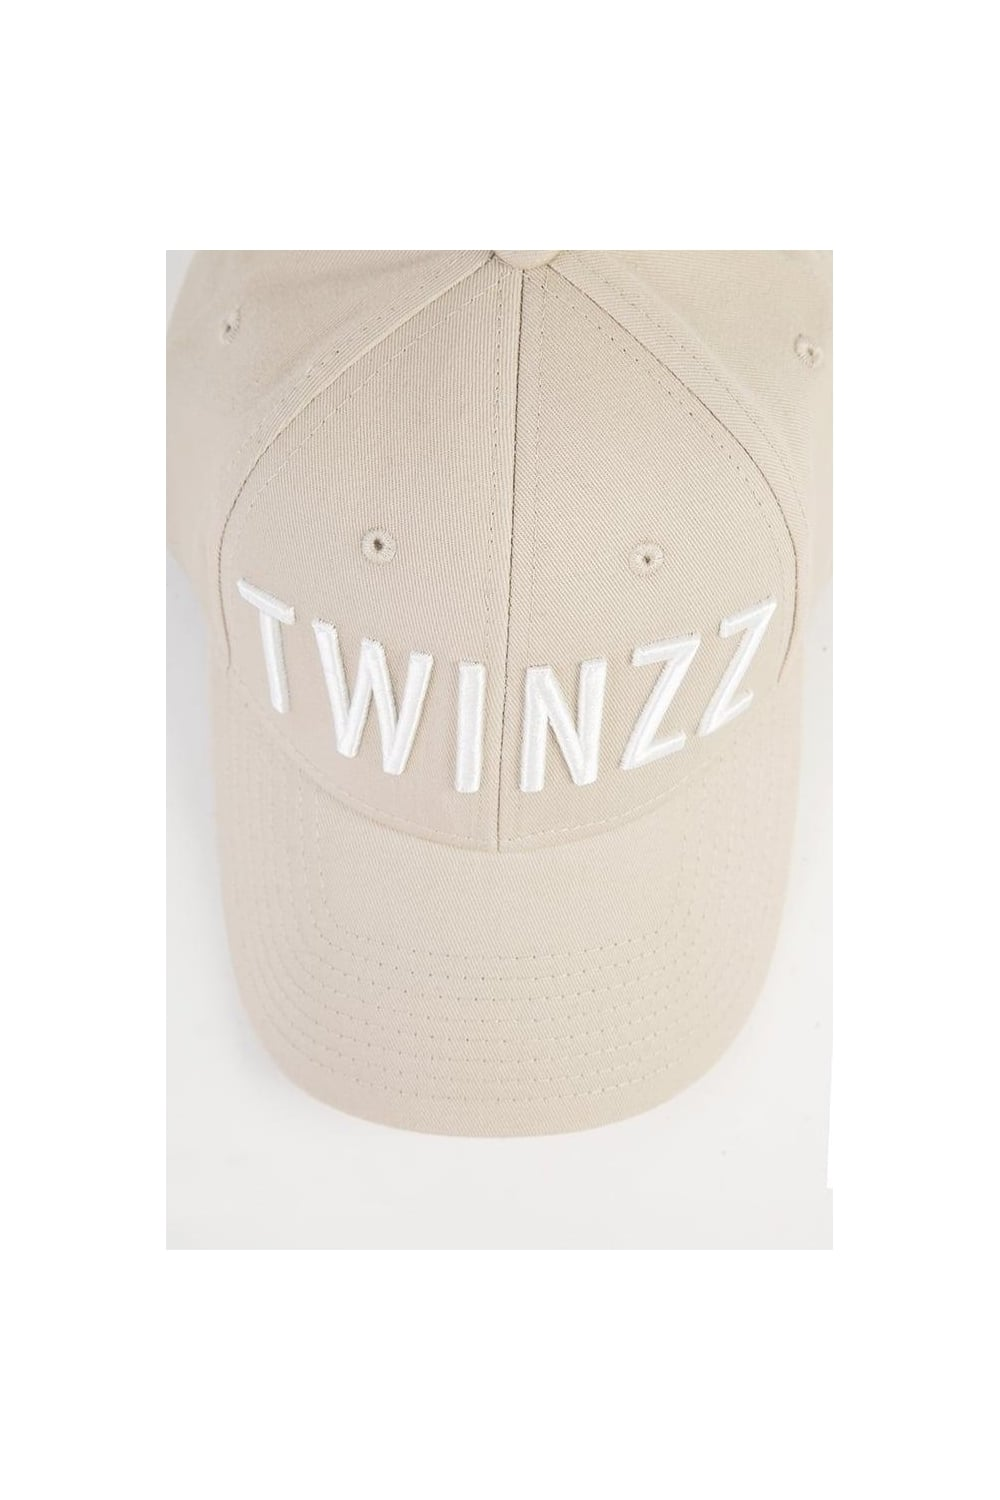 30b48a794 Twinzz | Harbor Twill Snapback in Stone | Intro